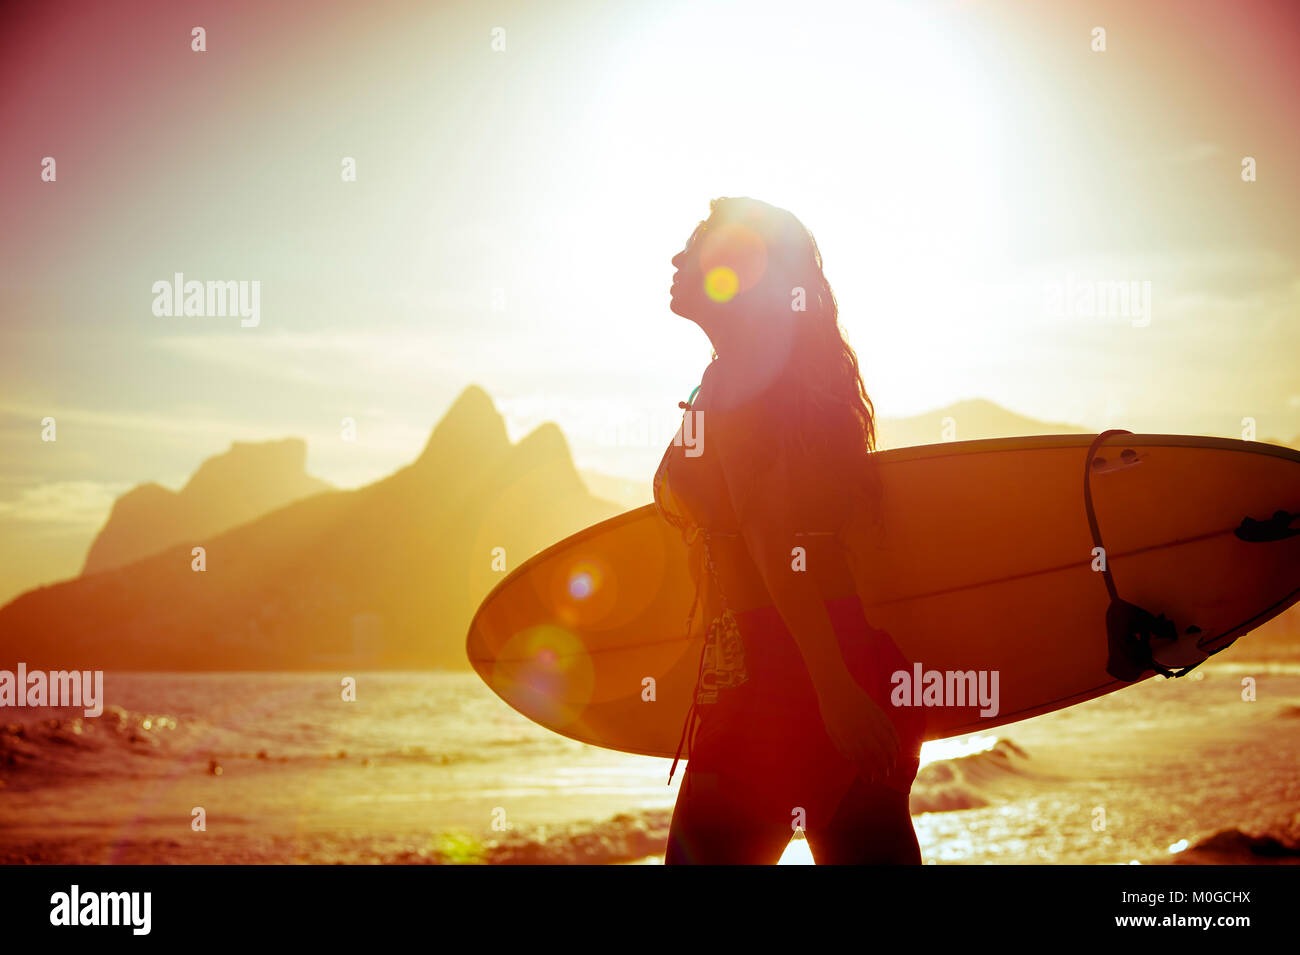 Unrecognizable silhouette of female surfer walking with her surfboard at Arpoador, the popular surf break in Rio - Stock Image